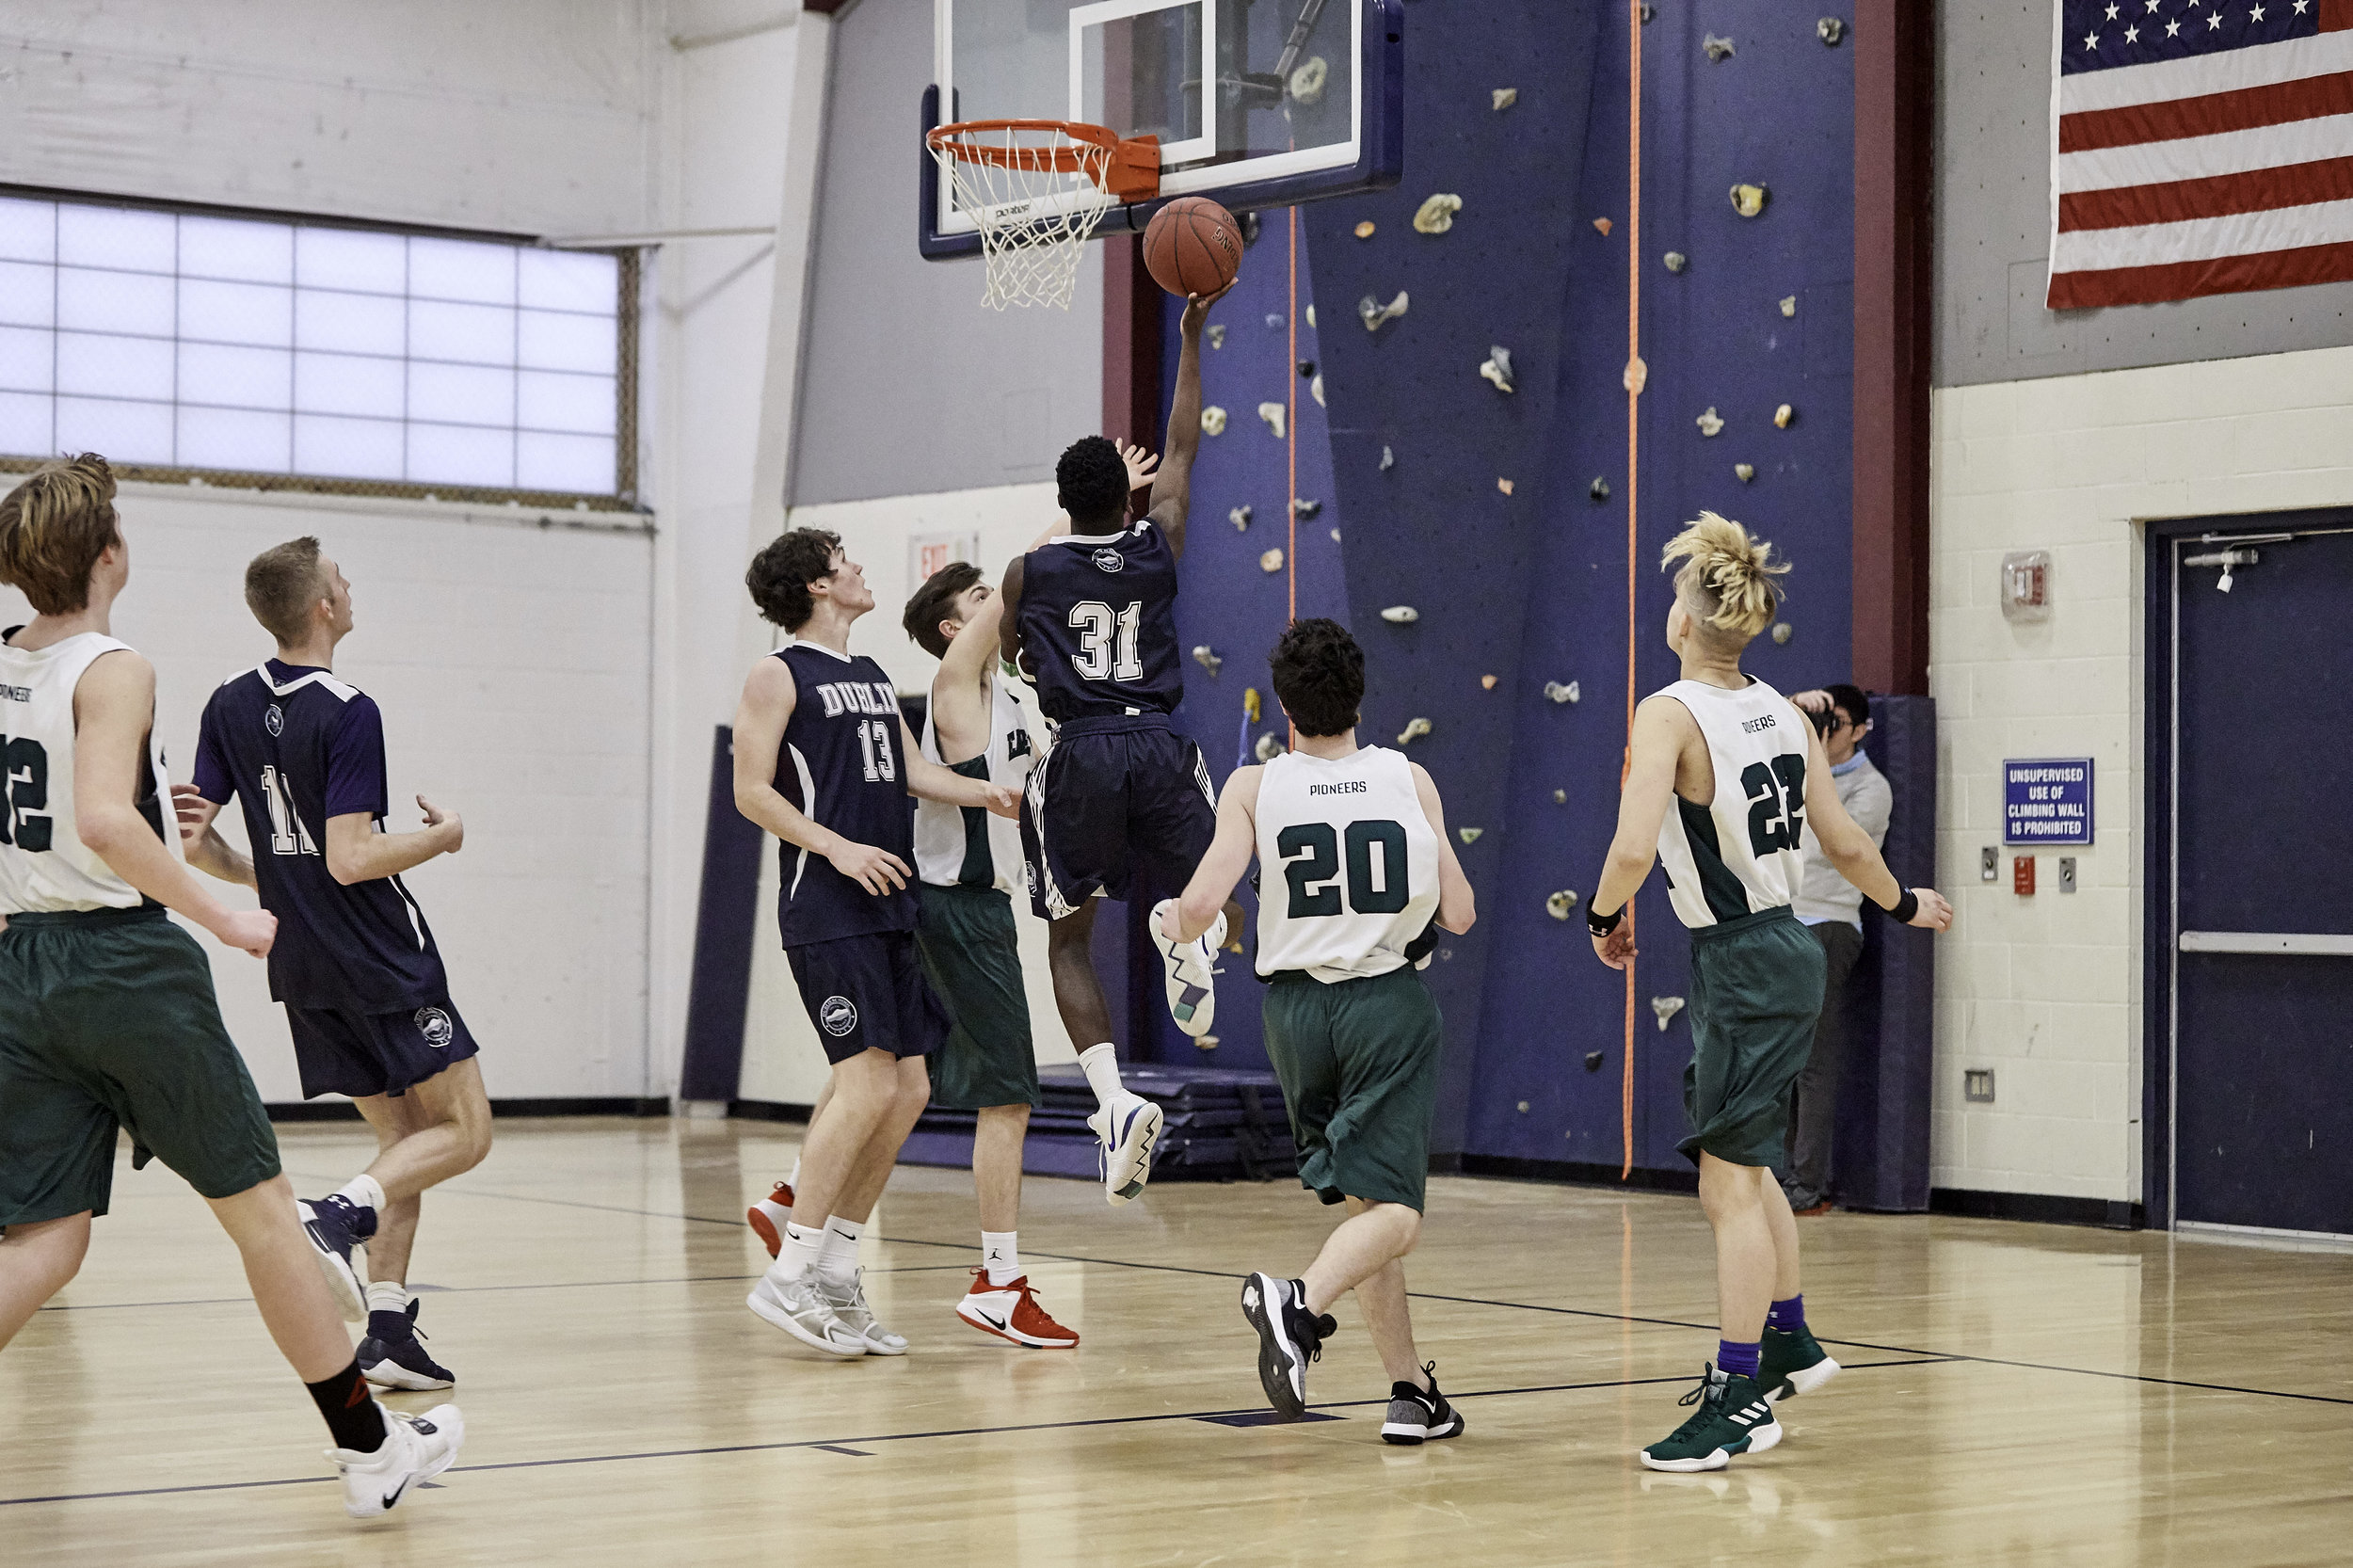 Boys Varsity Basketball vs. Eagle Hill School JV at RVAL Tournament - February 11, 2019 - 168027.jpg